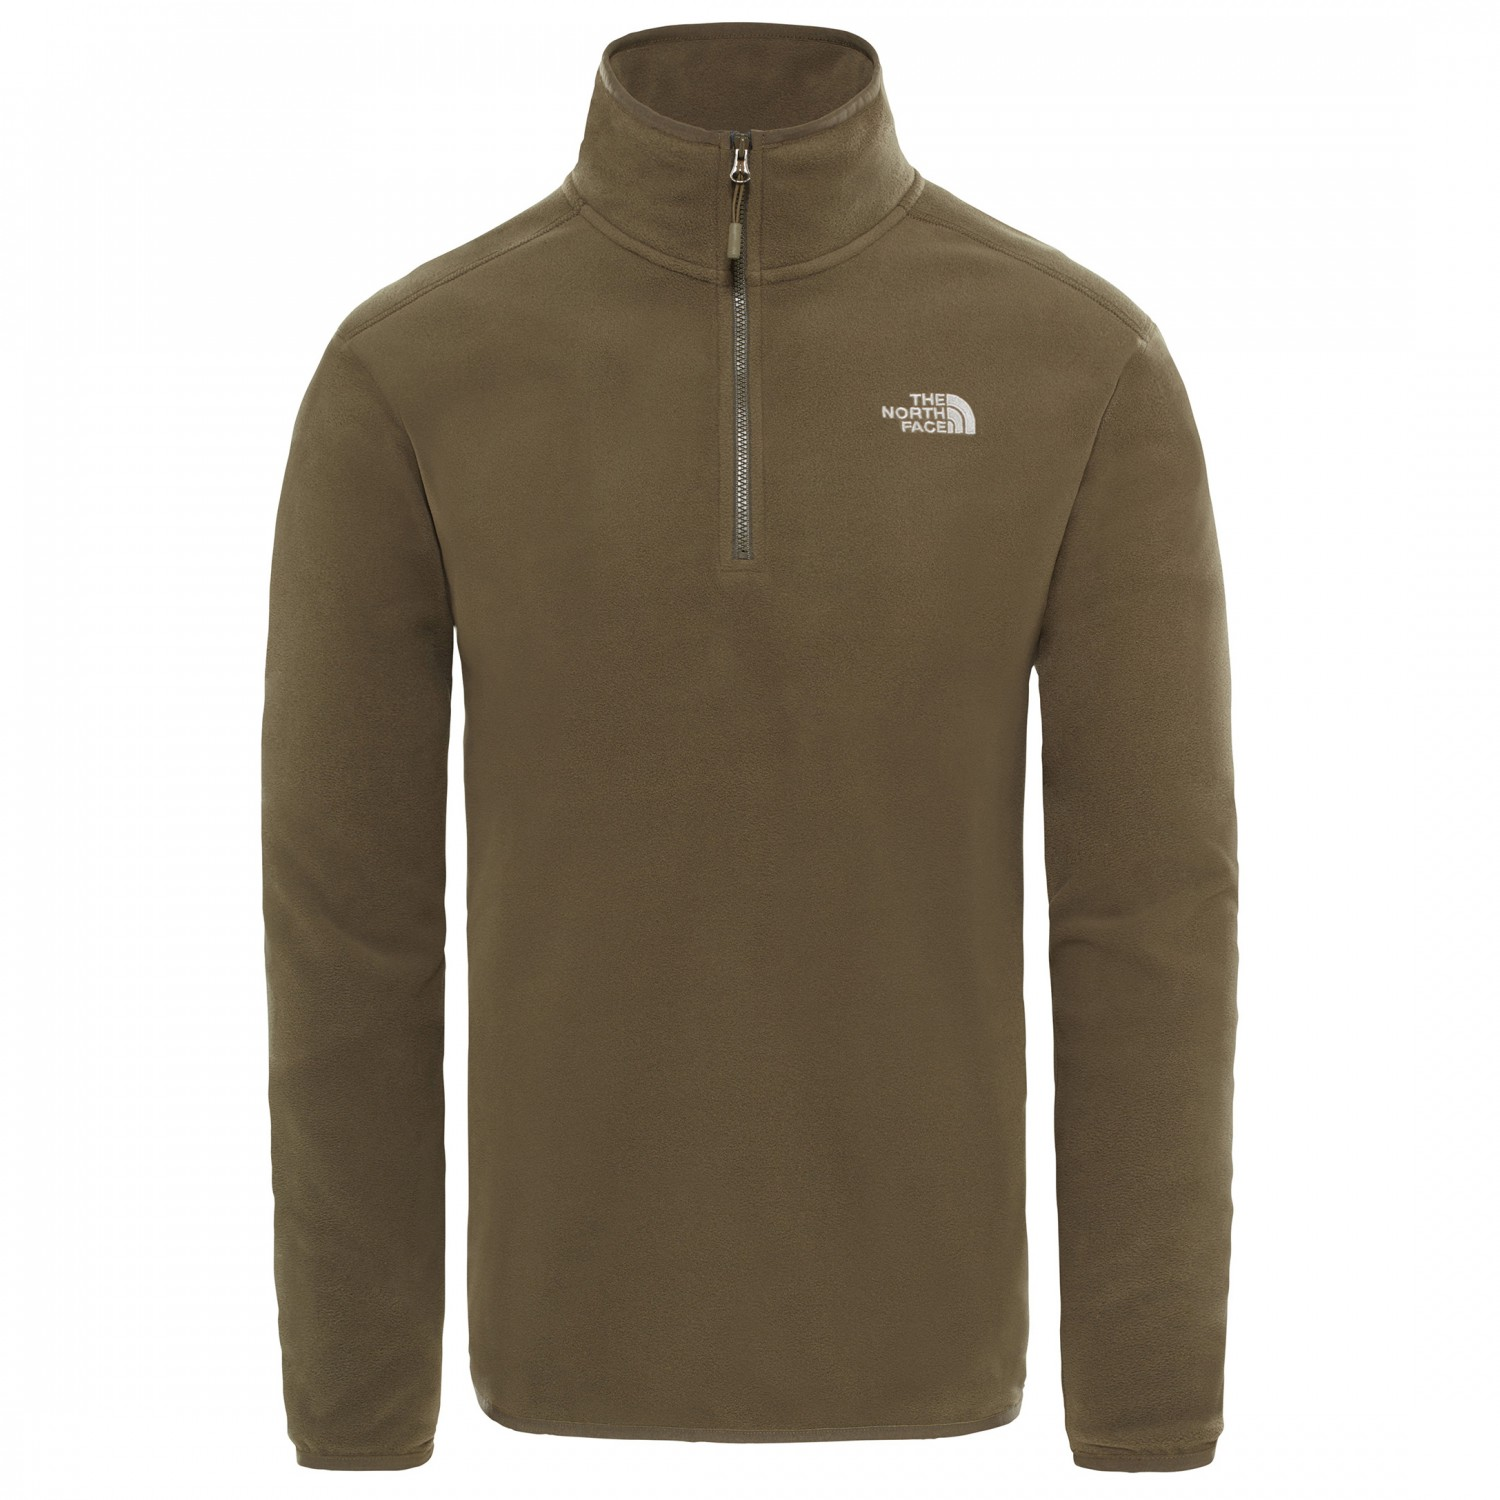 6b856b748 The North Face 100 Glacier 1/4 Zip - Fleece jumper Men's | Buy ...